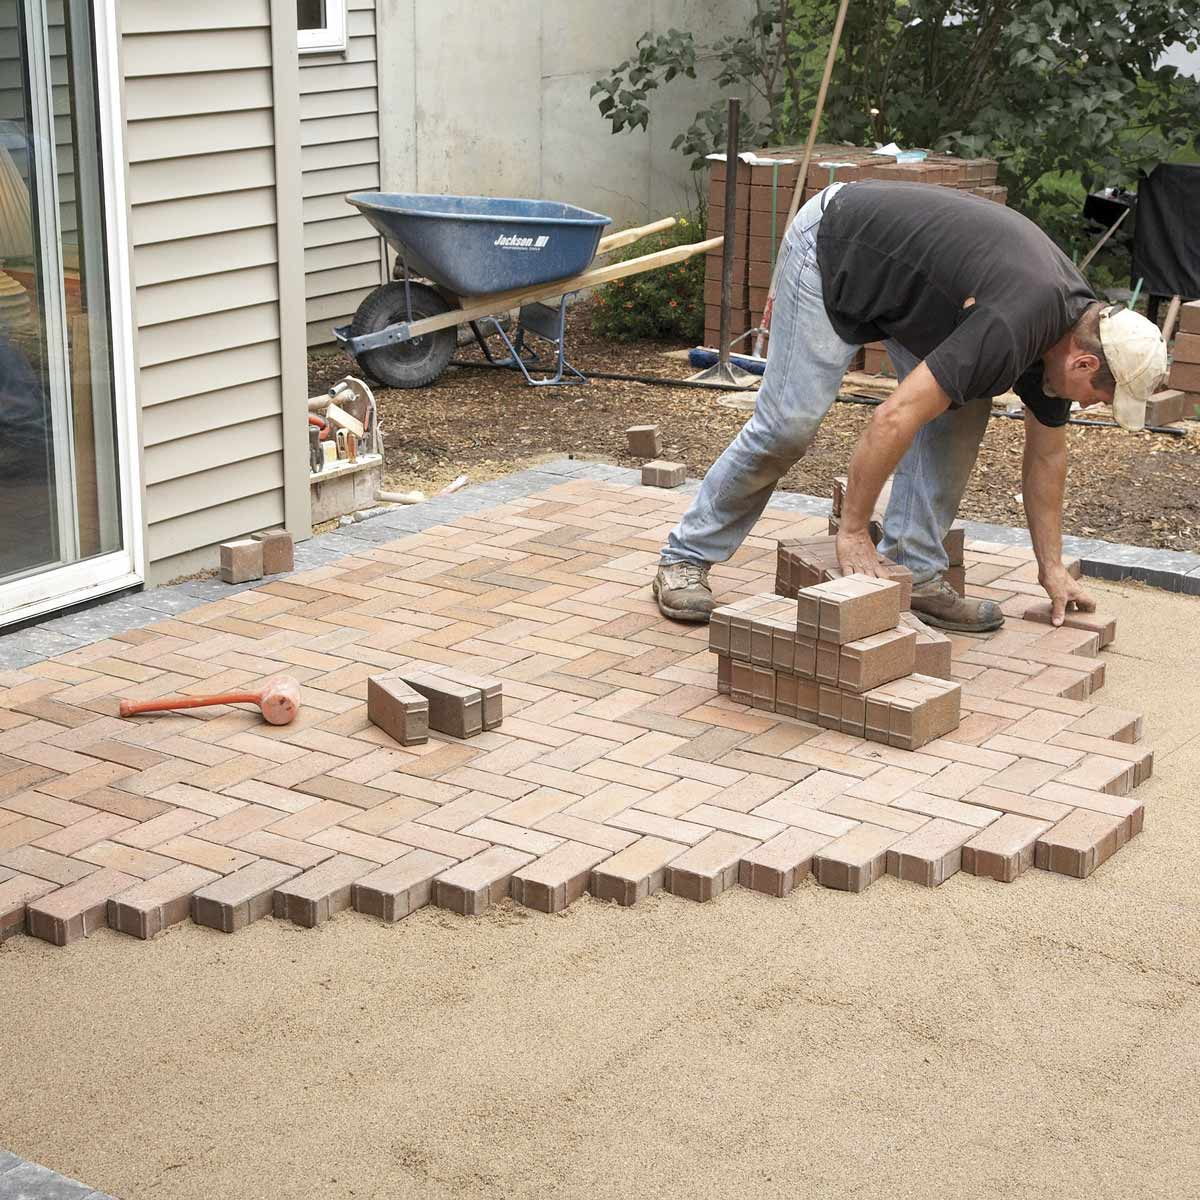 Pavers-Corpus Christi TX Landscape Designs & Outdoor Living Areas-We offer Landscape Design, Outdoor Patios & Pergolas, Outdoor Living Spaces, Stonescapes, Residential & Commercial Landscaping, Irrigation Installation & Repairs, Drainage Systems, Landscape Lighting, Outdoor Living Spaces, Tree Service, Lawn Service, and more.